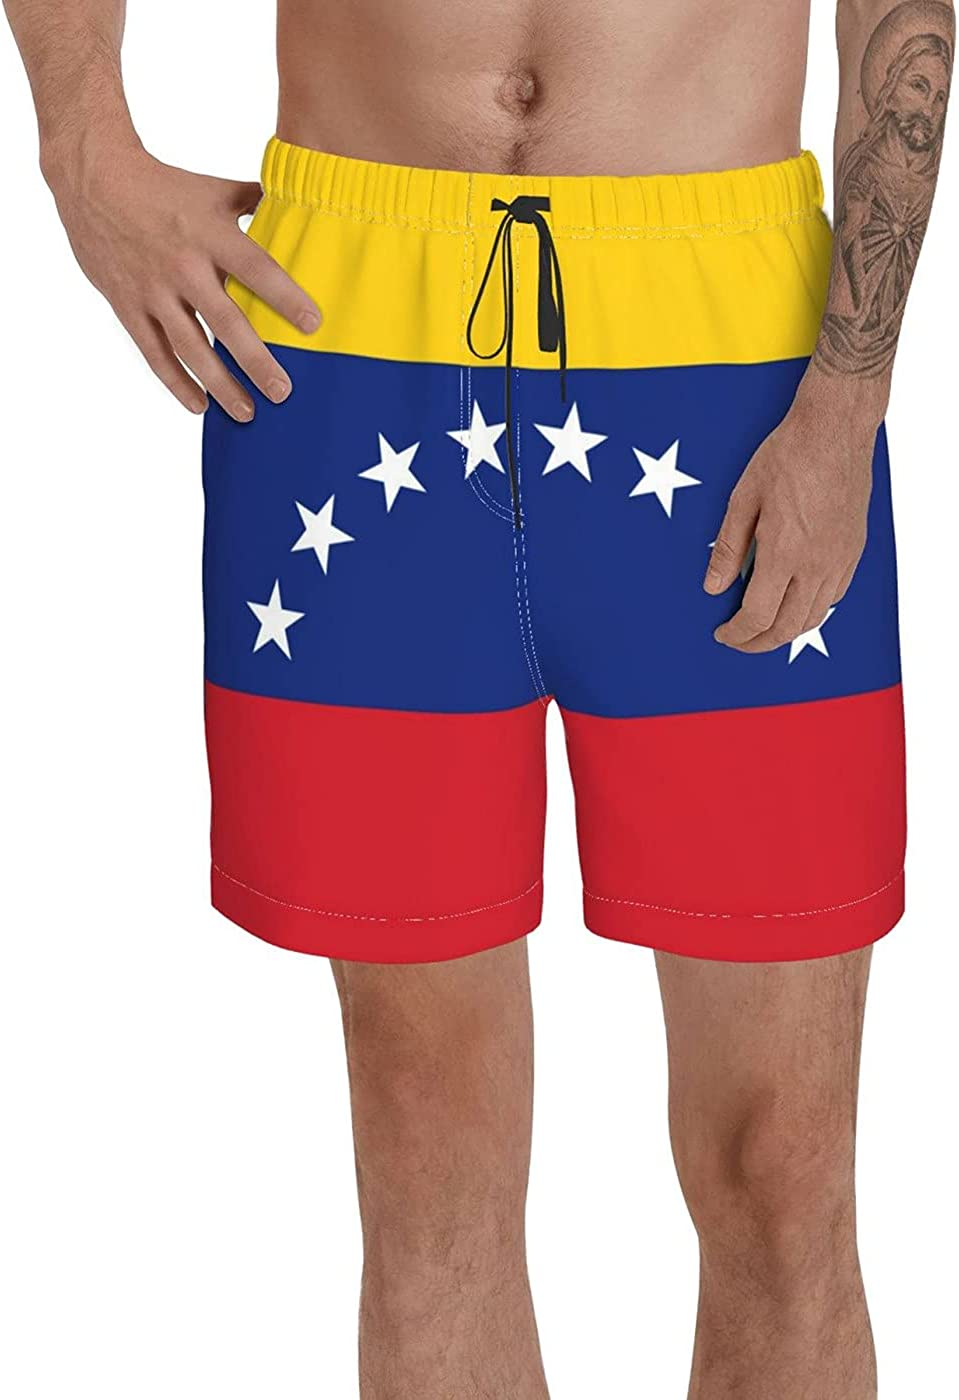 Count Venezuela 8 Stars Flag Men's 3D Printed Funny Summer Quick Dry Swim Short Board Shorts with